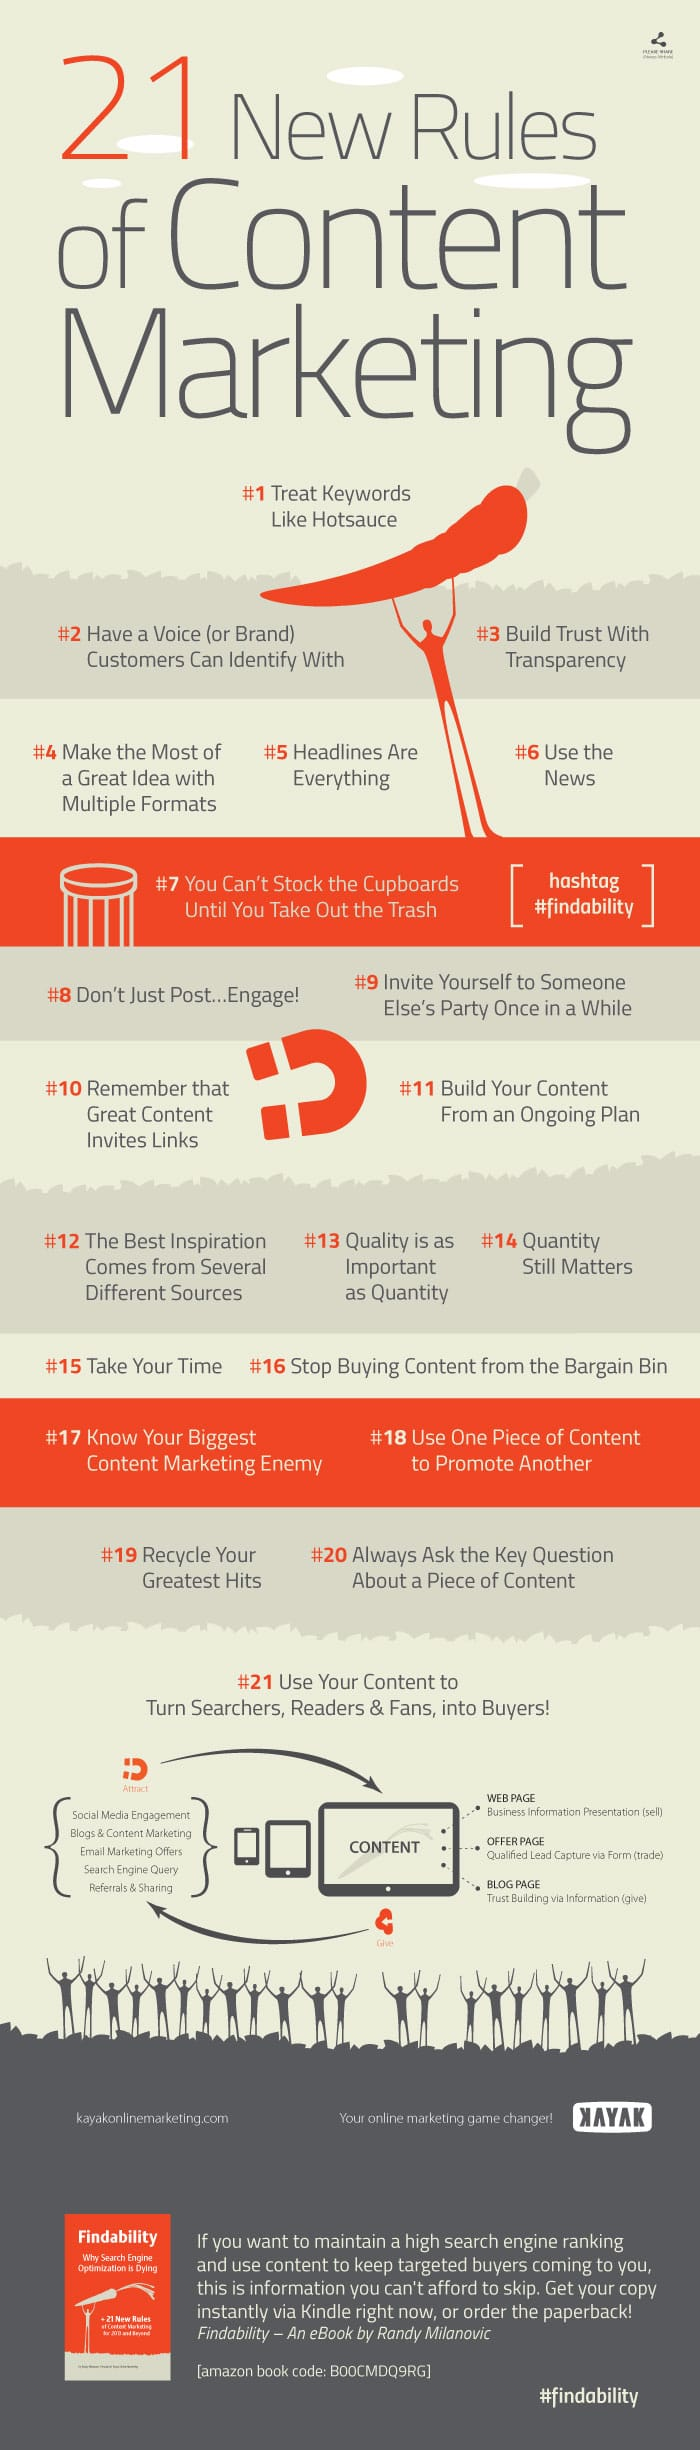 21 Content Marketing Rules Infographic